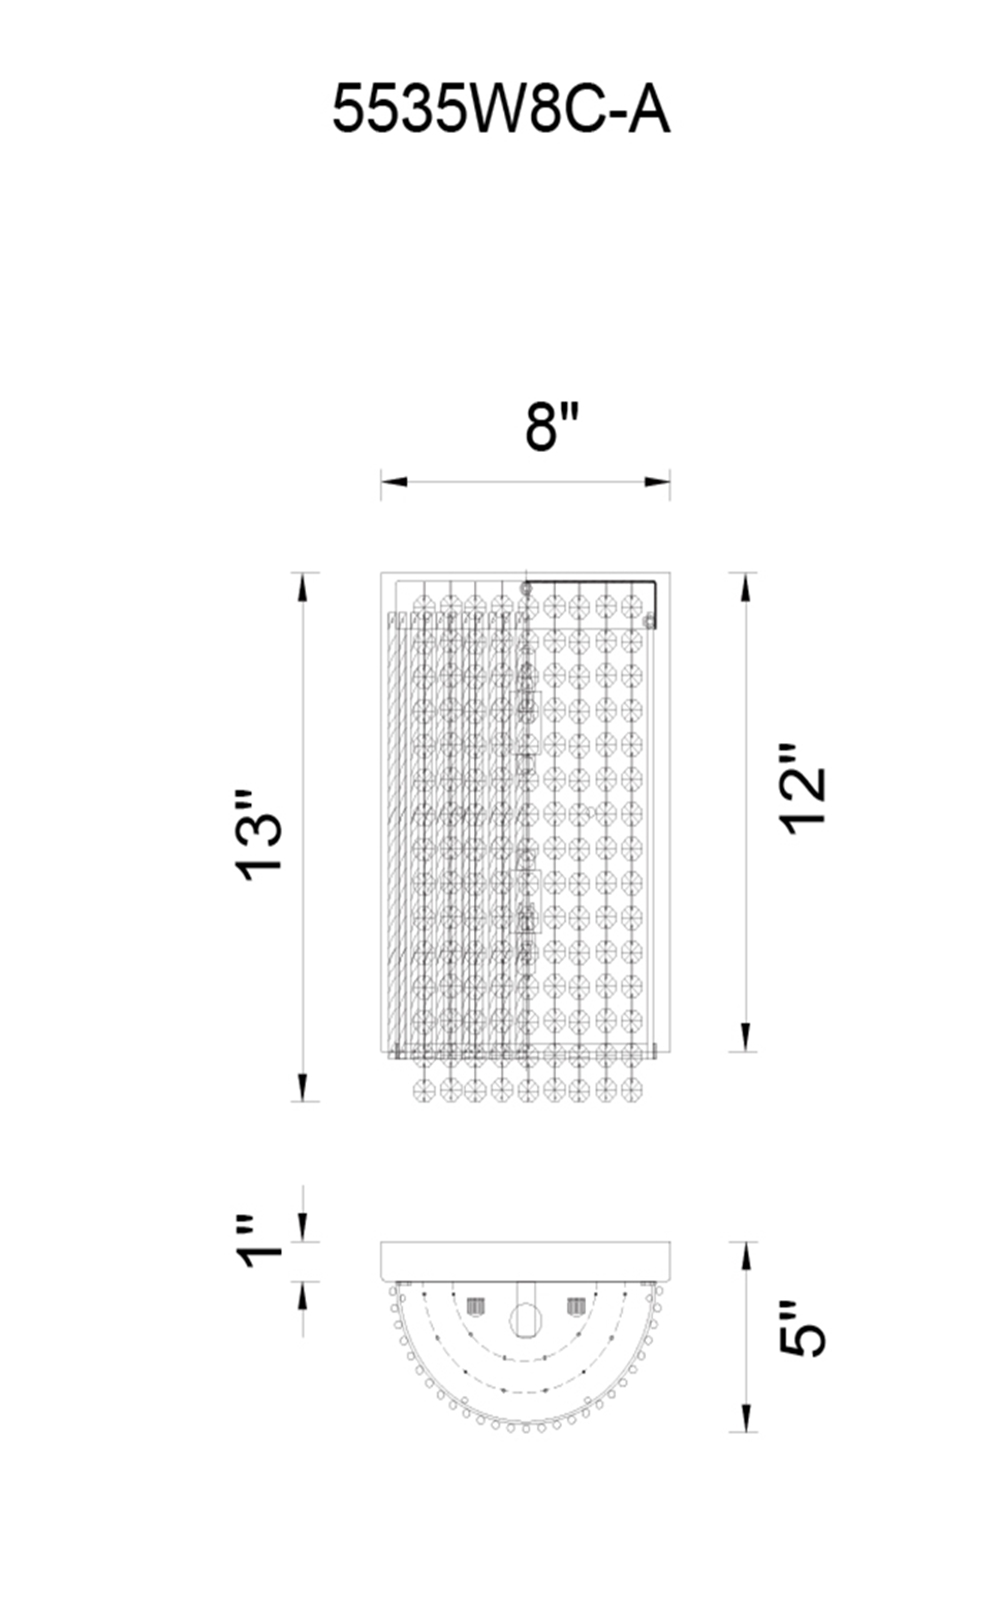 CWI Lighting Claire 2 Light Wall Sconce With Chrome Finish Model: 5535W8C-A Line Drawing